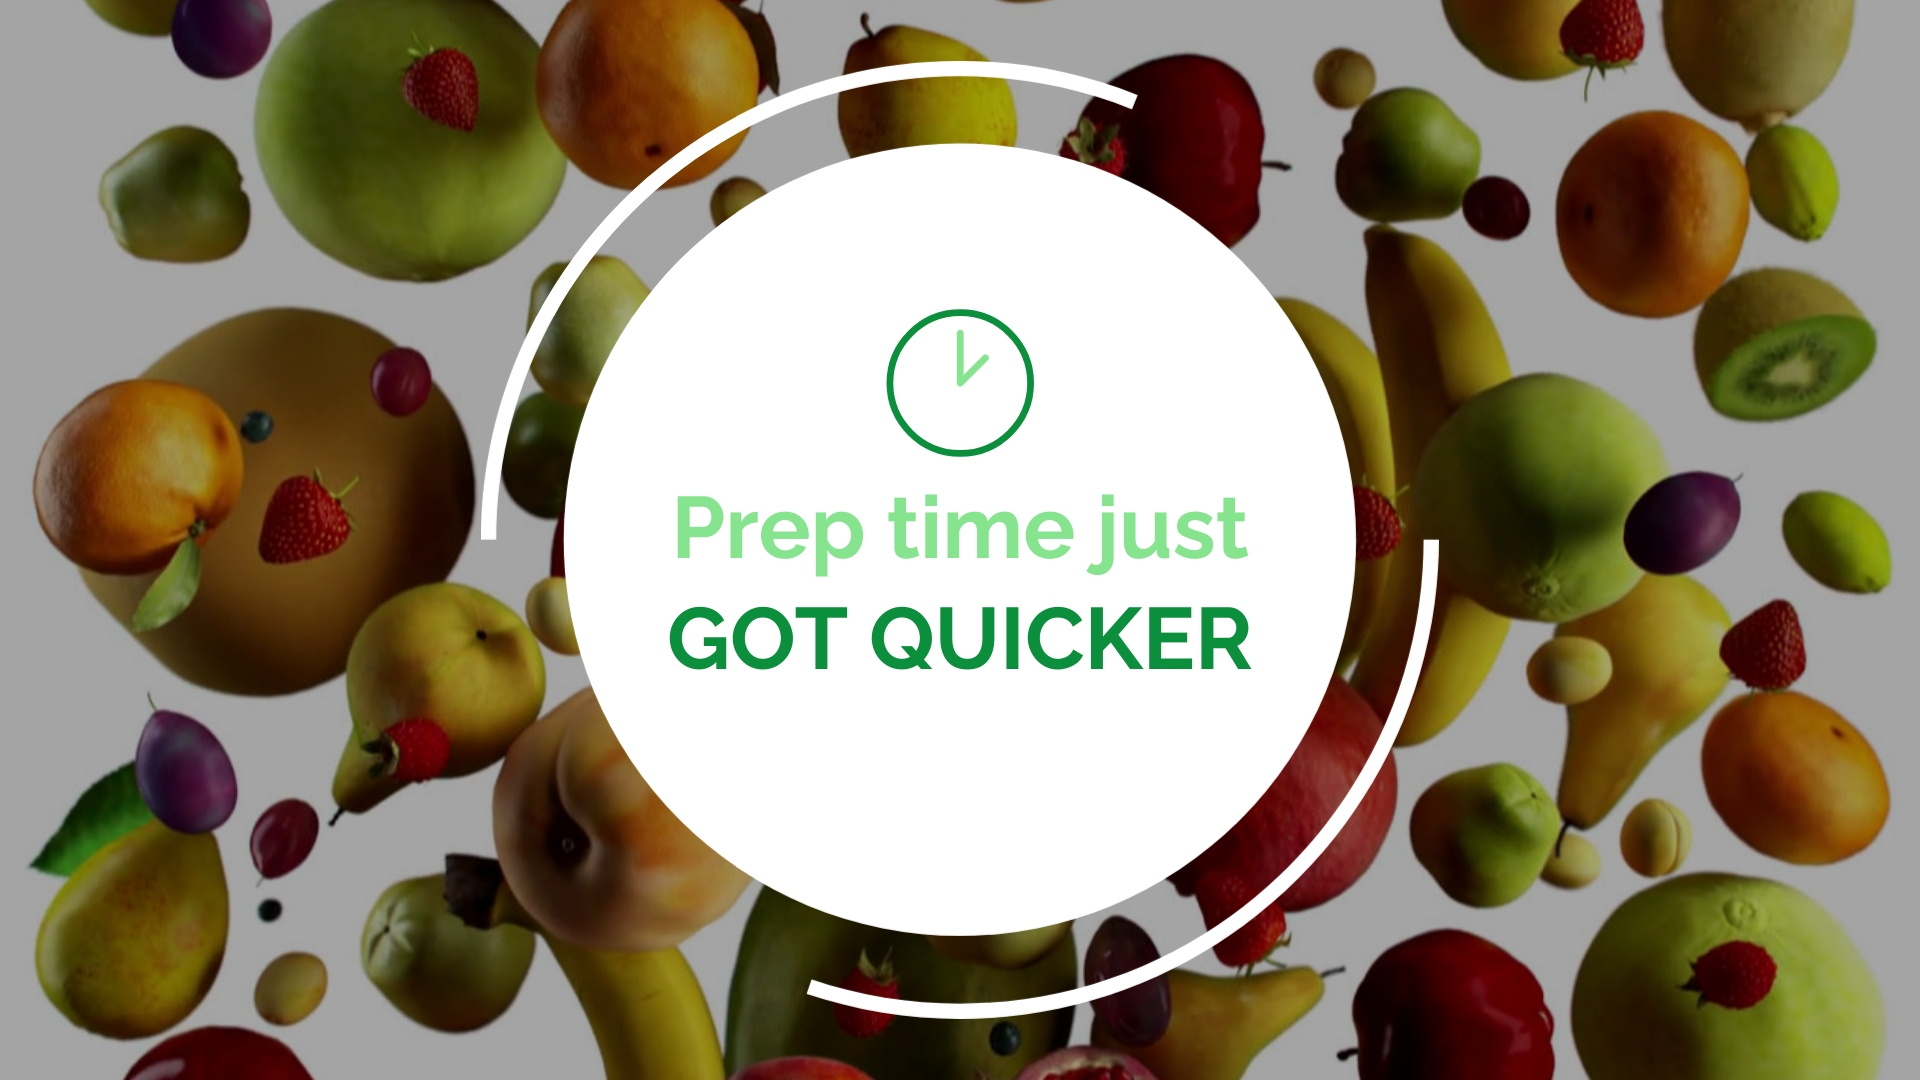 Food Processor Product Video Template